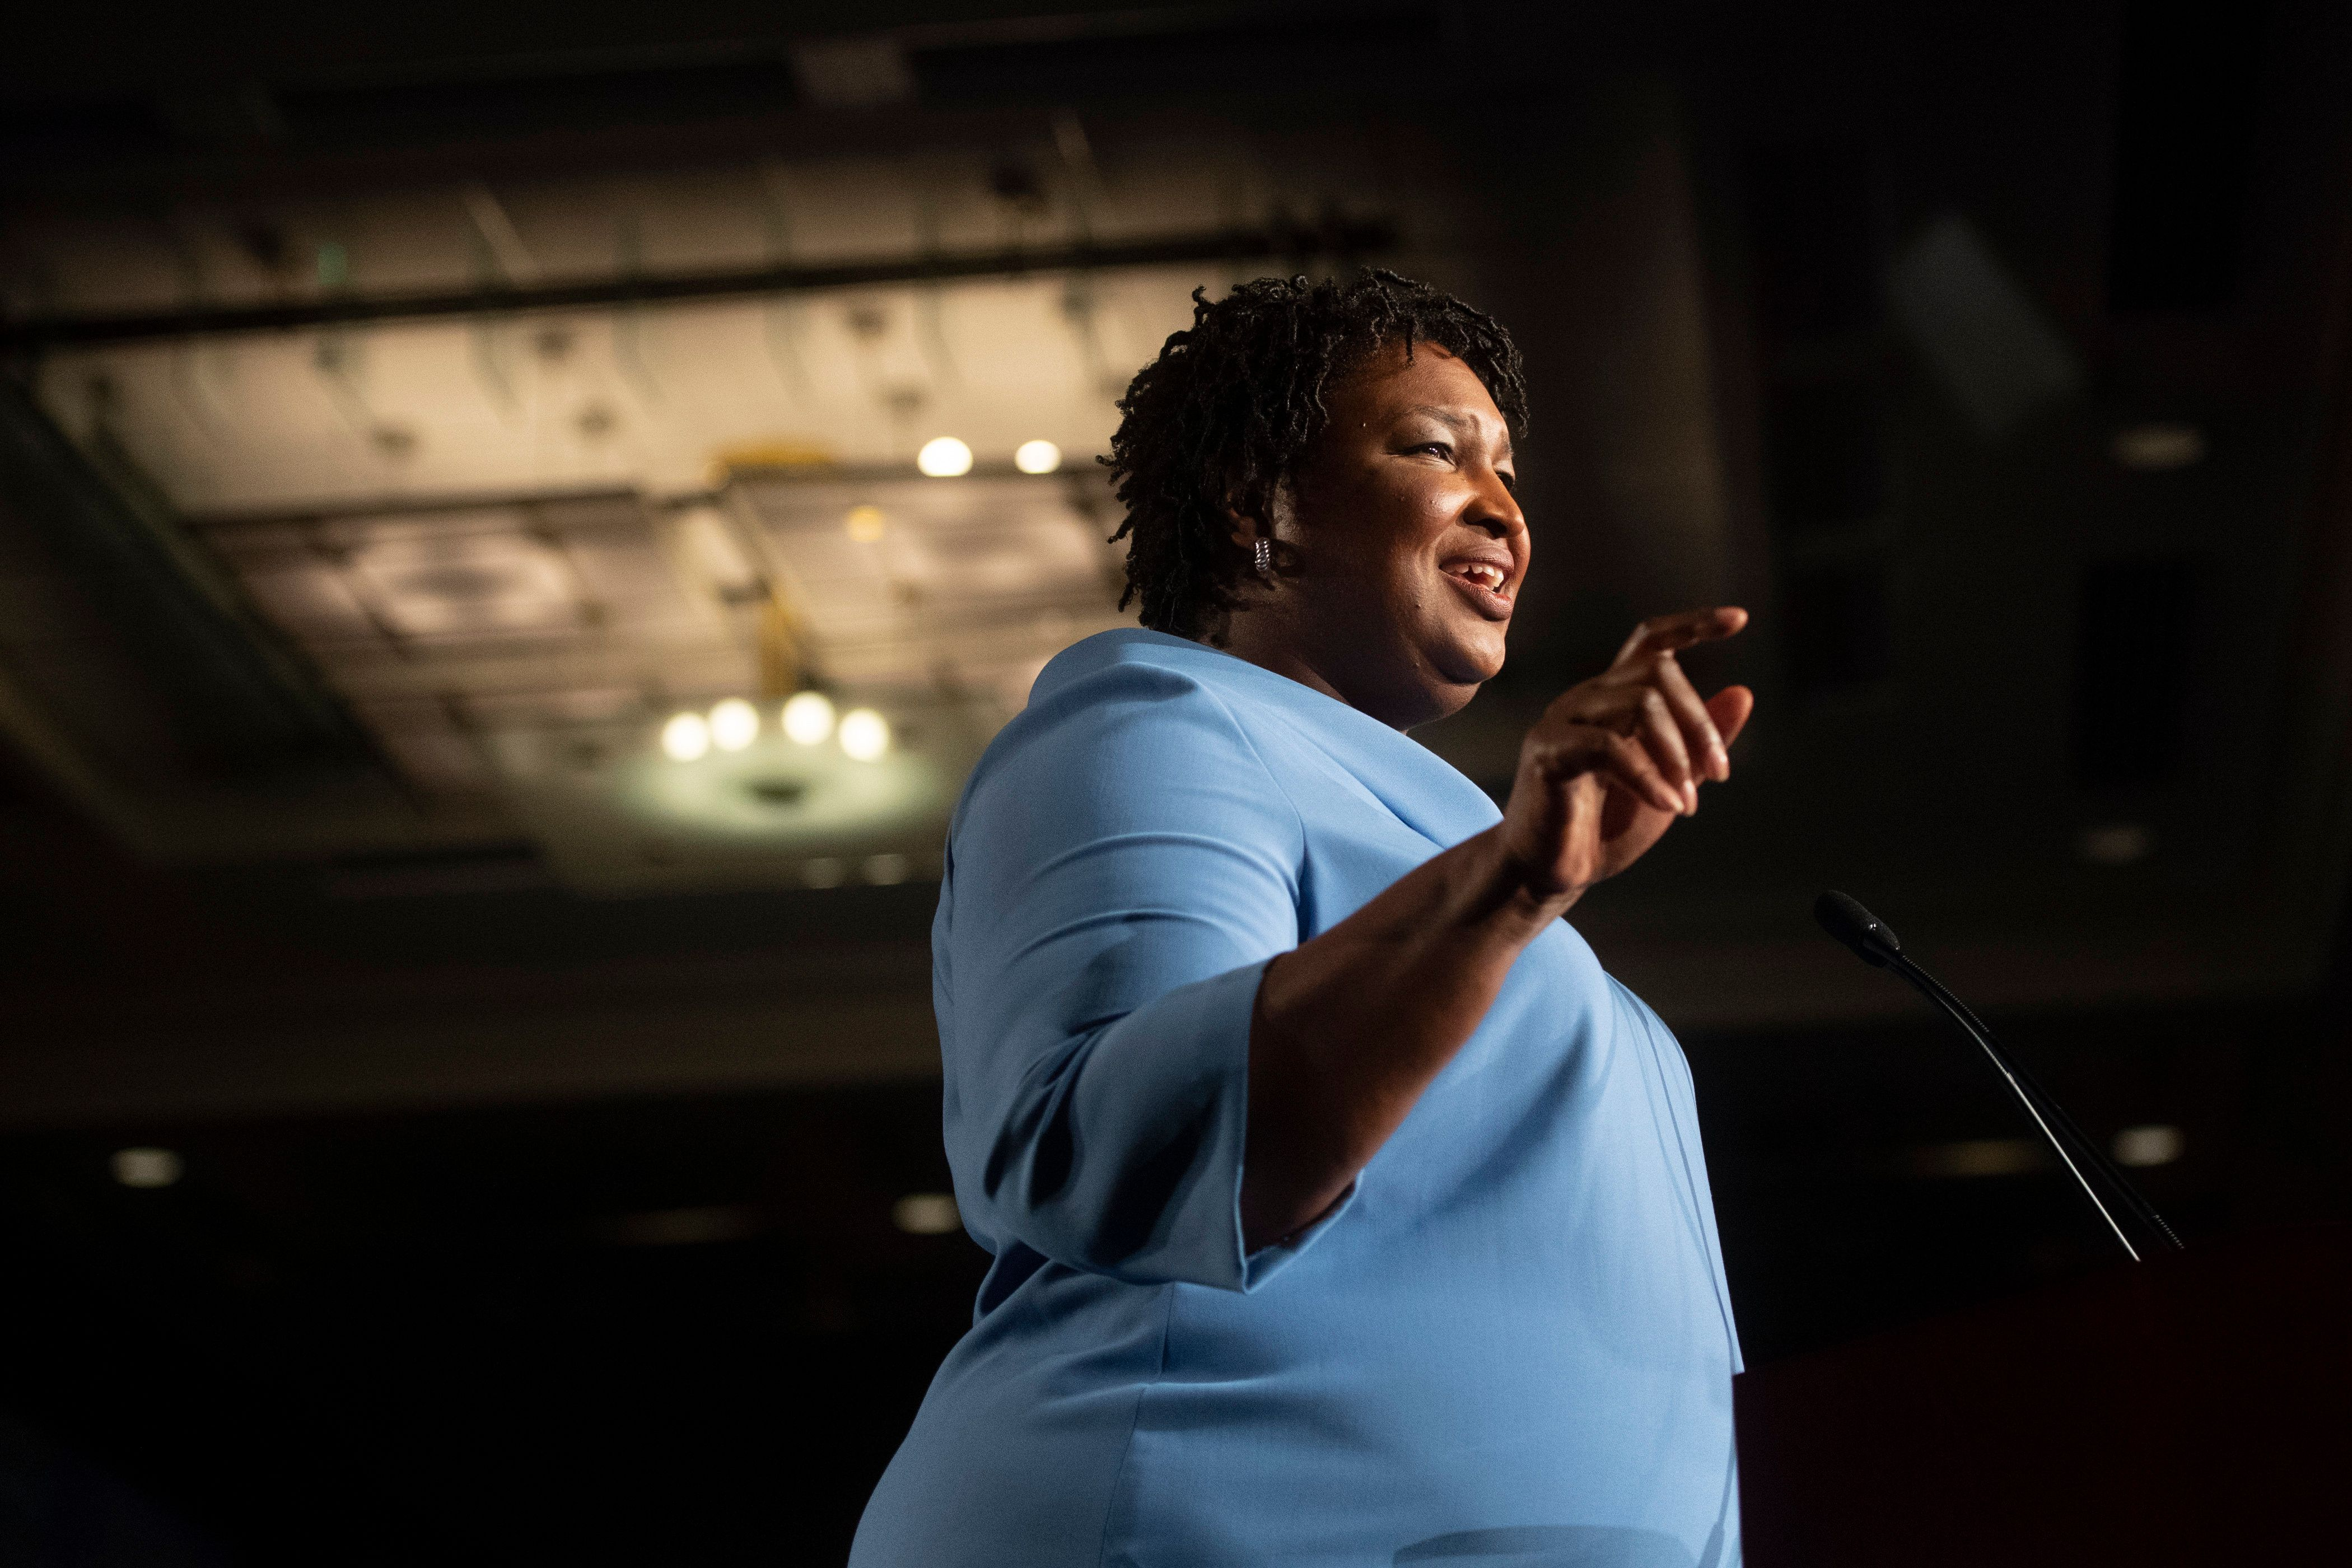 Stacey Abrams still has a chance to become the governor of Georgia.